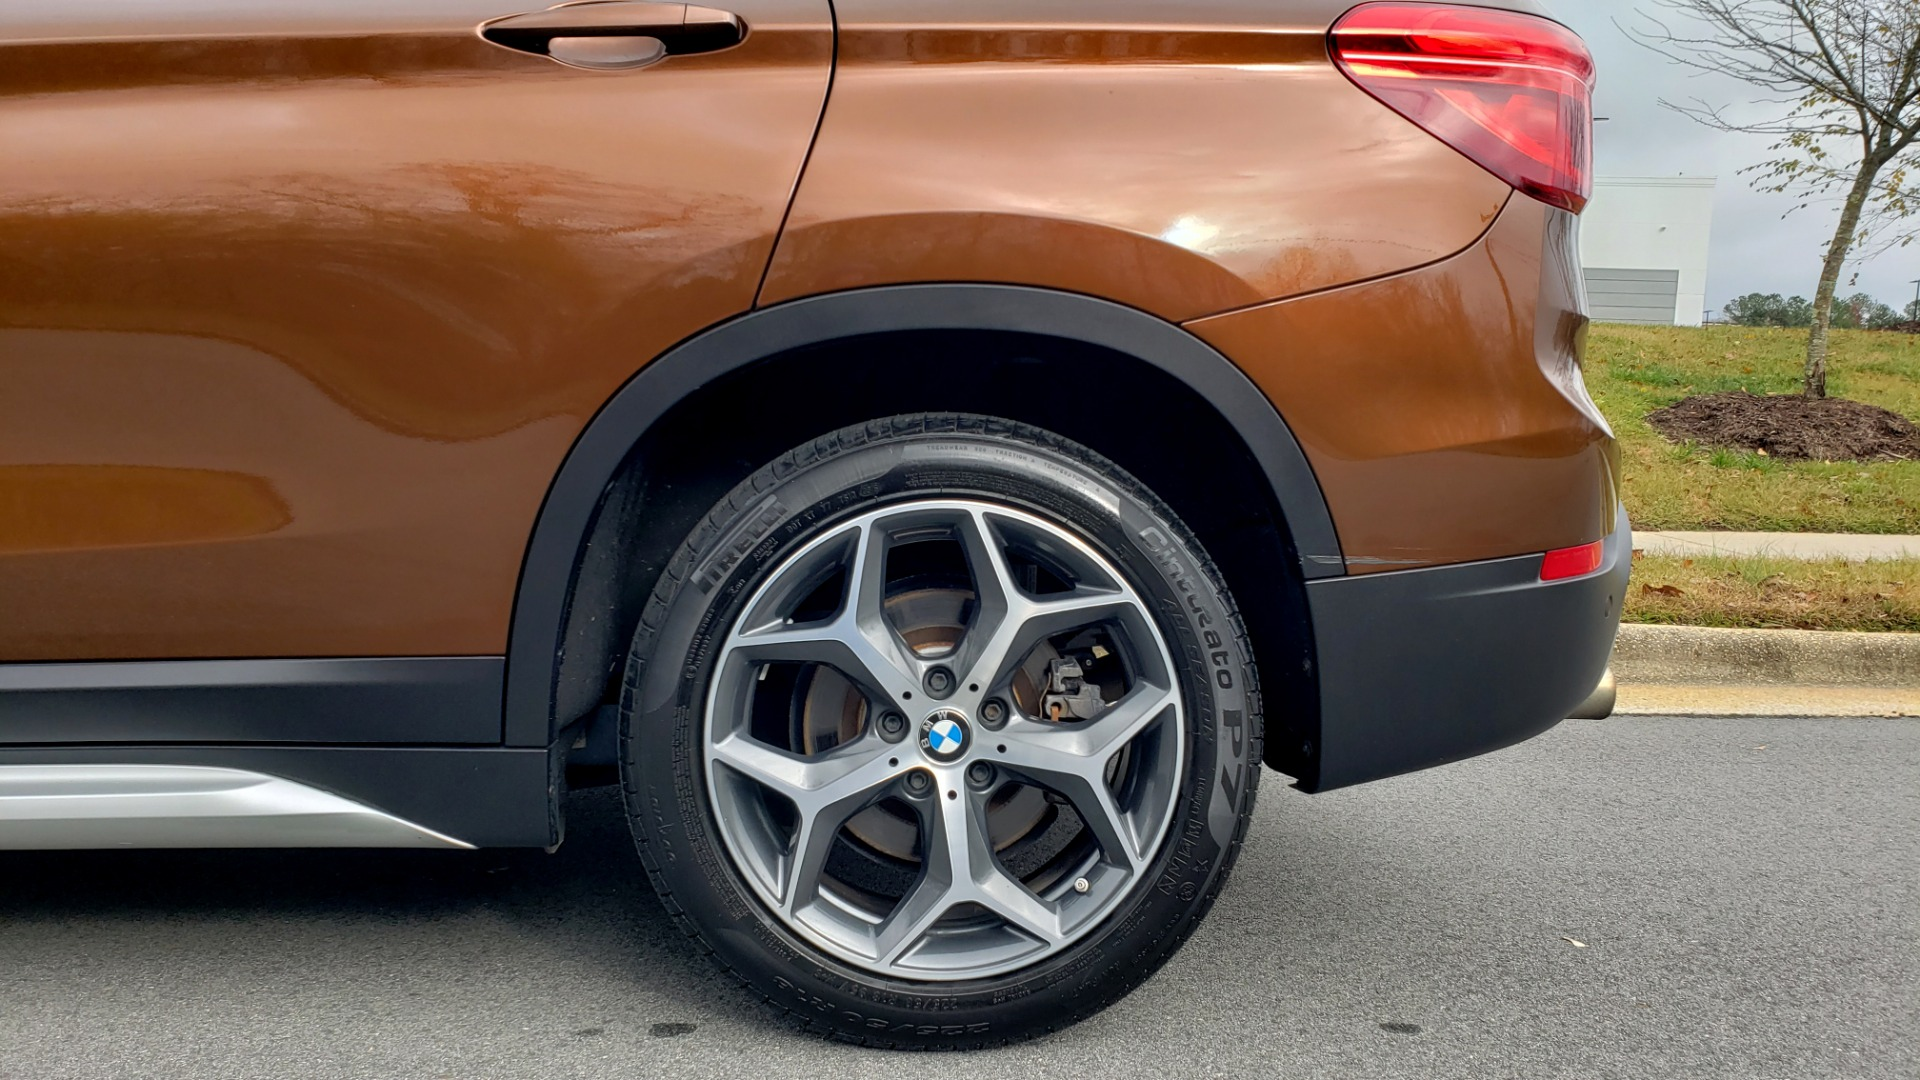 Used 2017 BMW X1 XDRIVE28I / PREM / TECH / DRVR ASST / COLD WTHR / REARVIEW for sale Sold at Formula Imports in Charlotte NC 28227 78